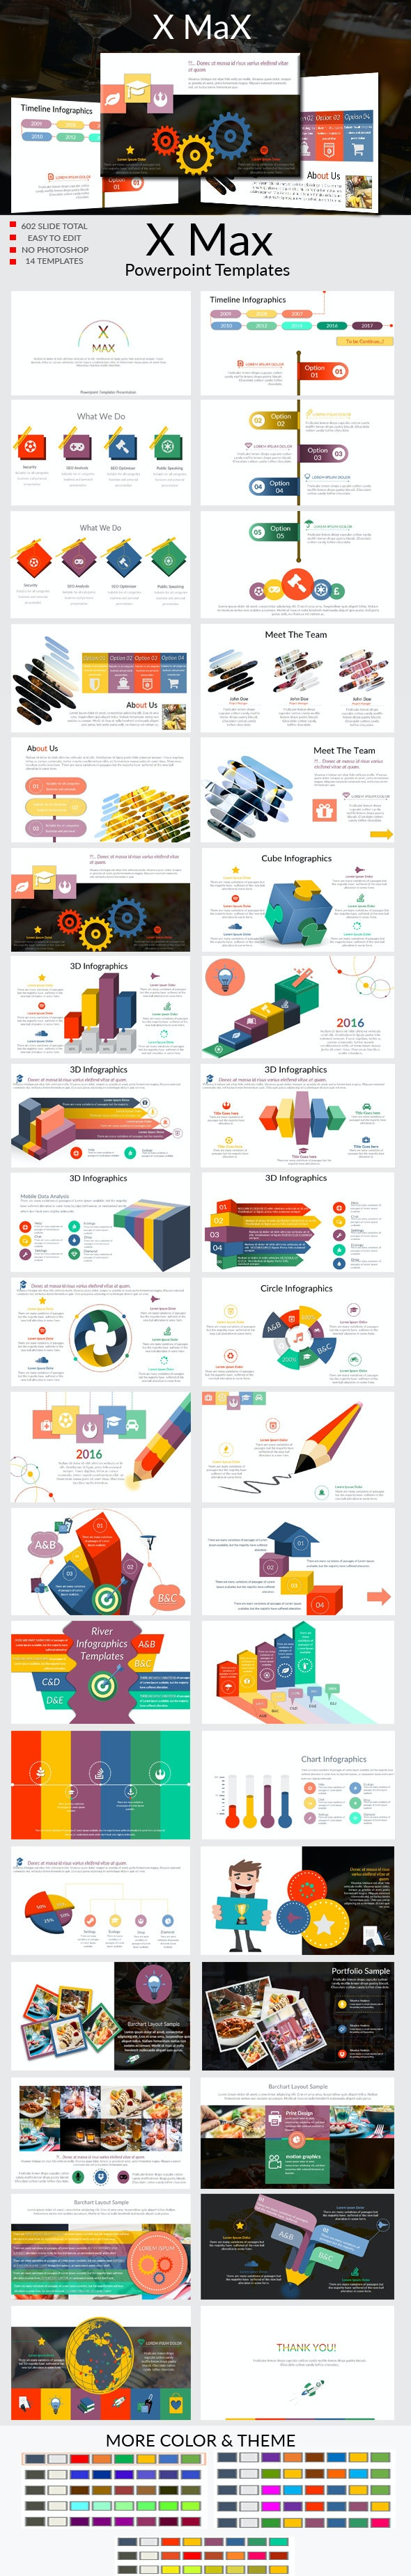 X Max Powerpoint Templates - Business PowerPoint Templates